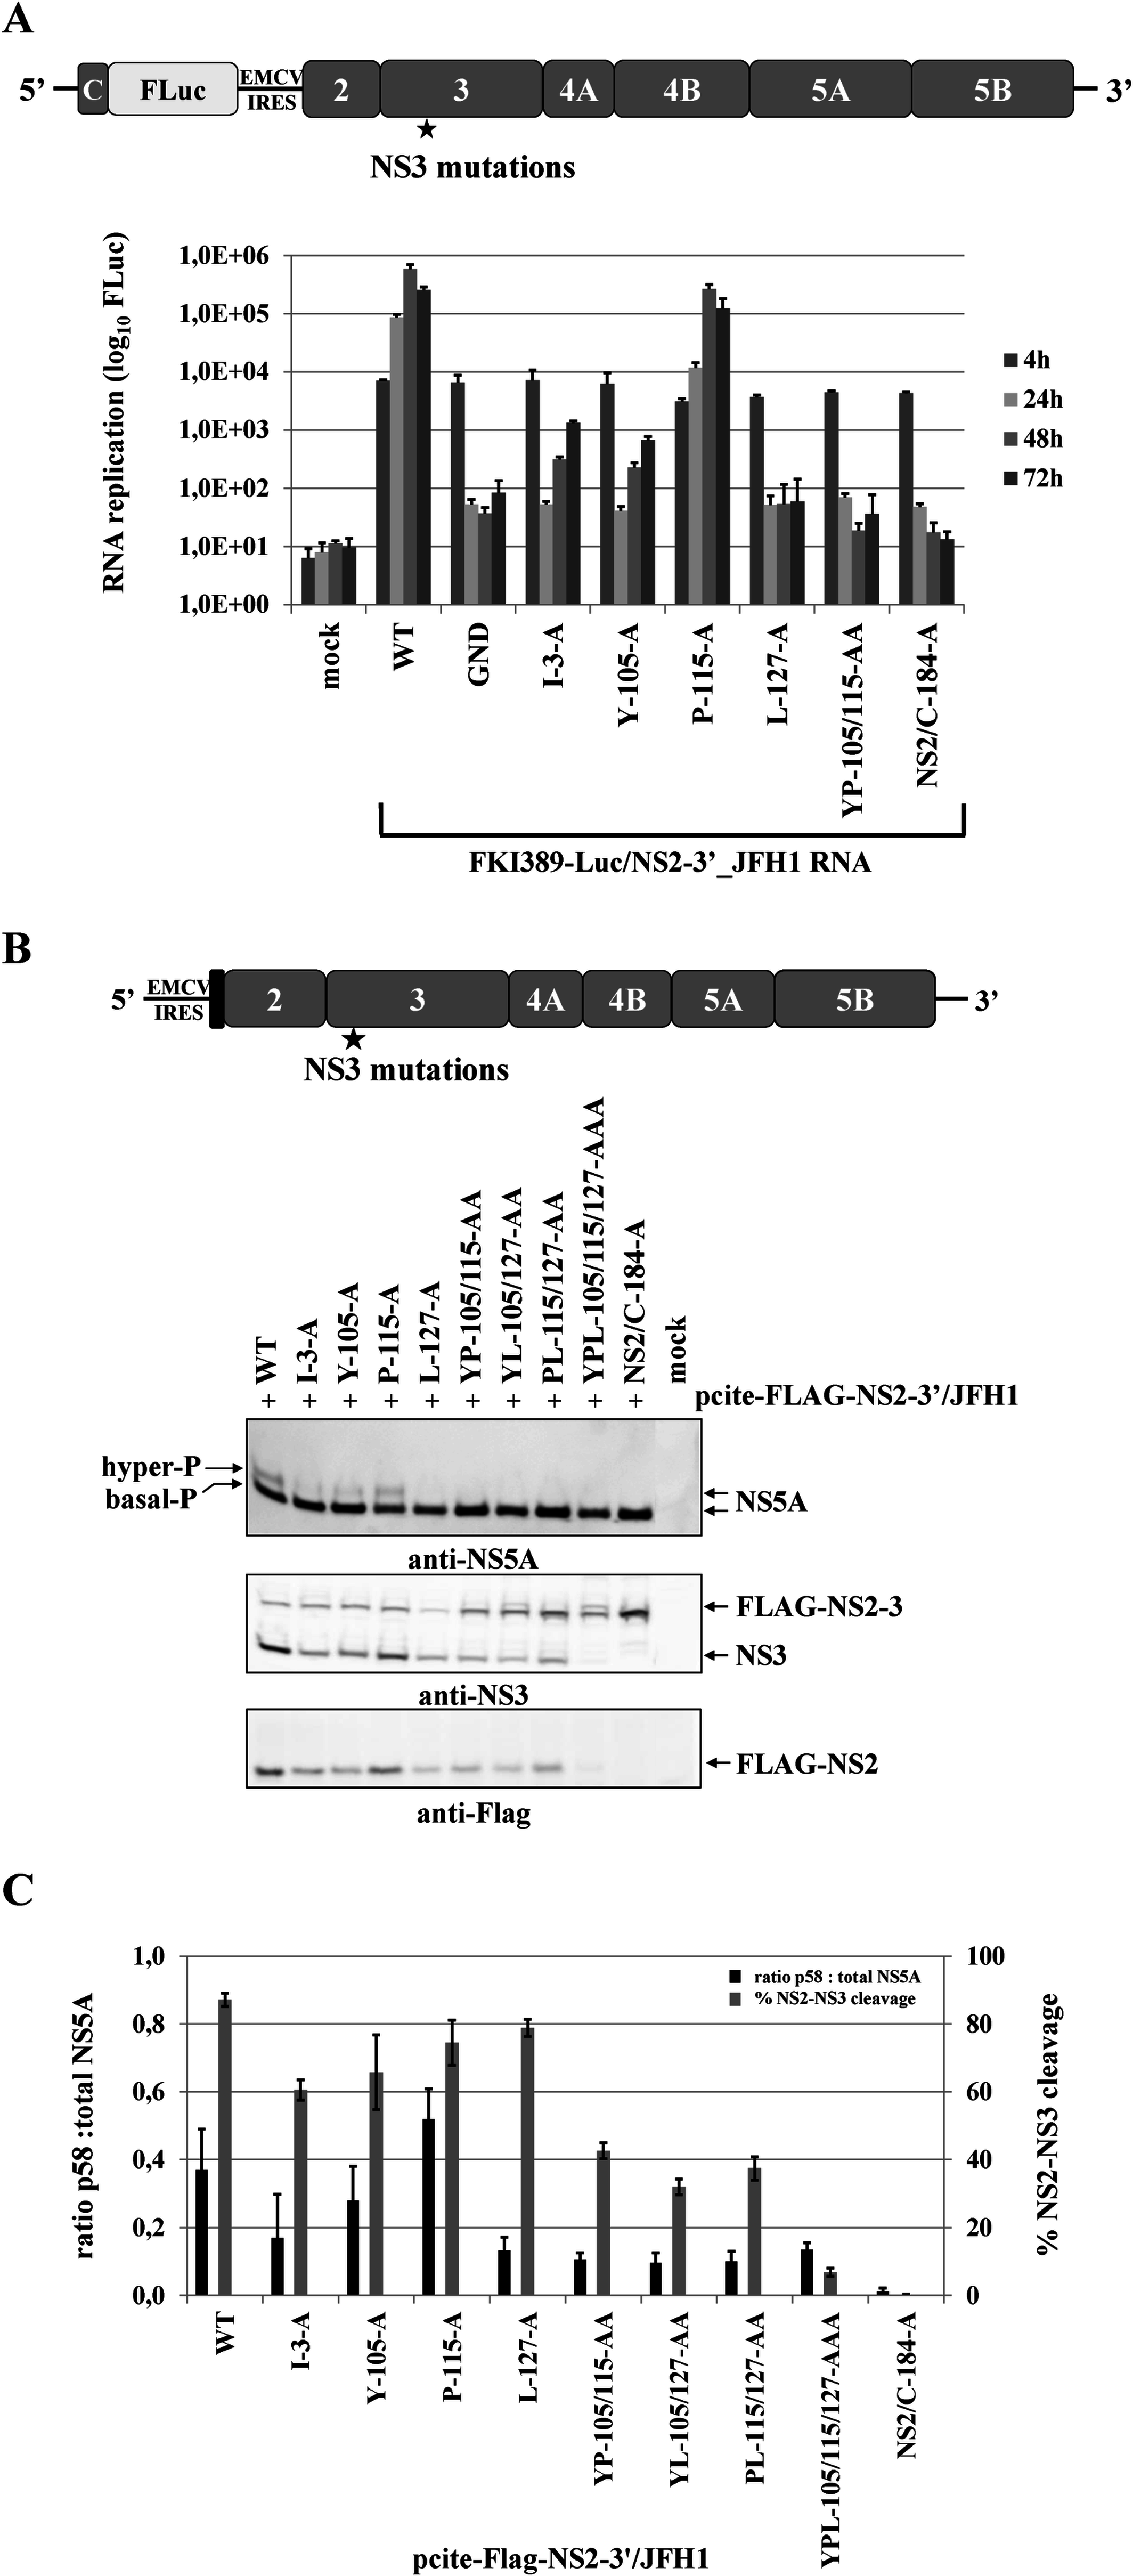 Mutational analysis of the NS3 mutations in the context of a HCV genotype 2a subgenomic NS2-5B replicon revealed NS2-NS3 cleavage is a prerequisite for NS5A hyperphosphorylation.